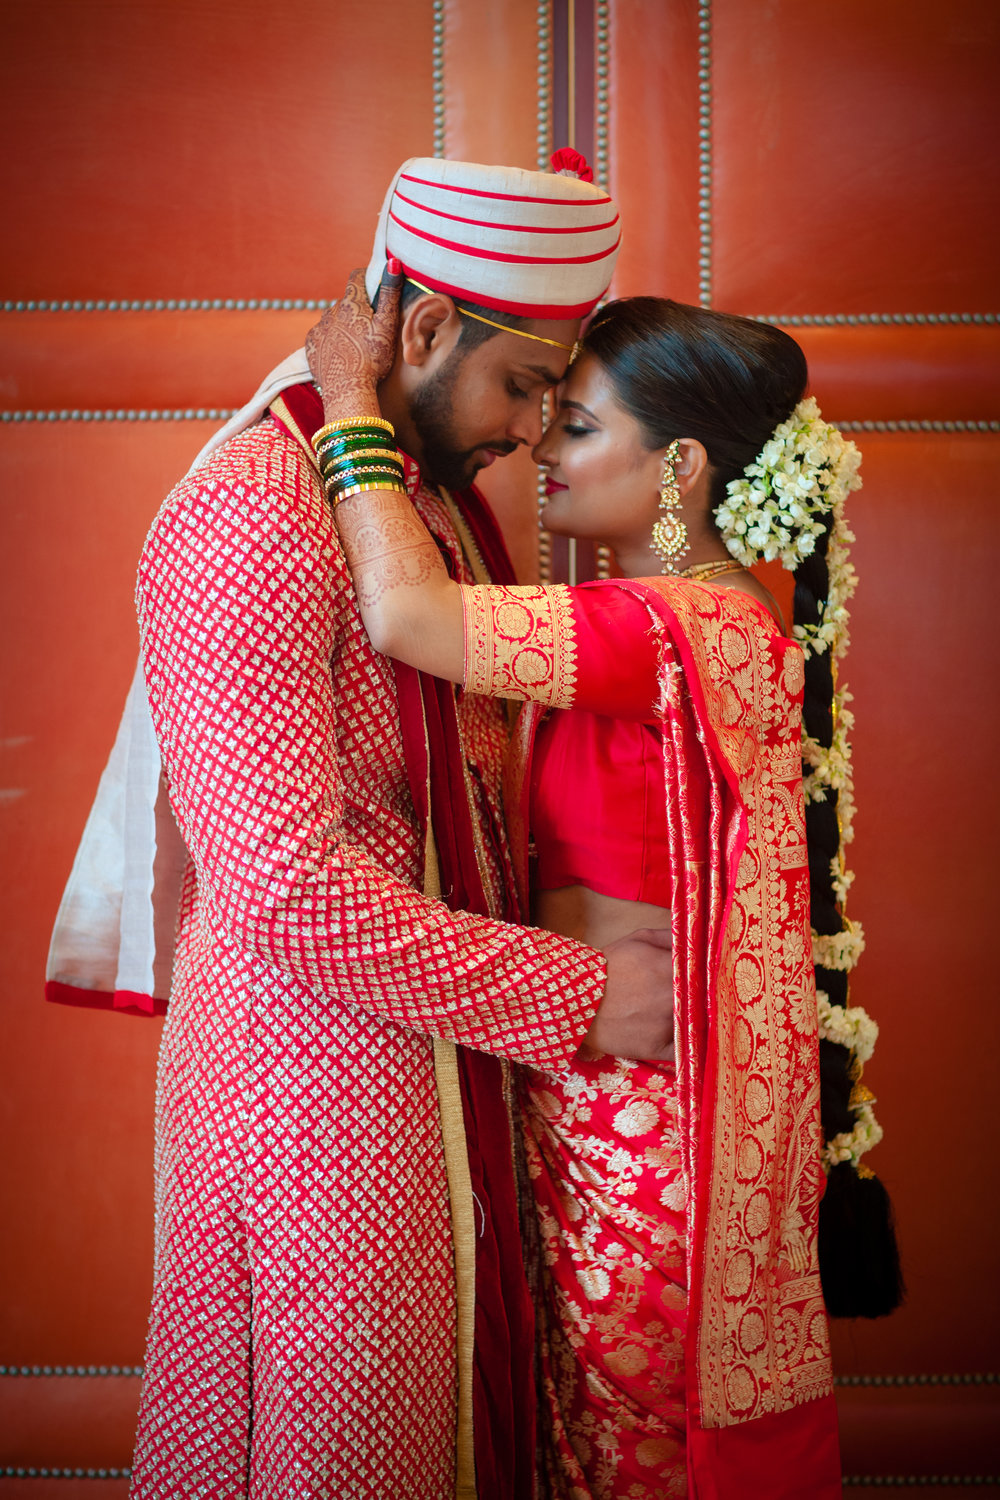 Vermilion Weddings & Events: San Francisco Bay Area Wedding Planner, Prajakta & Avinash